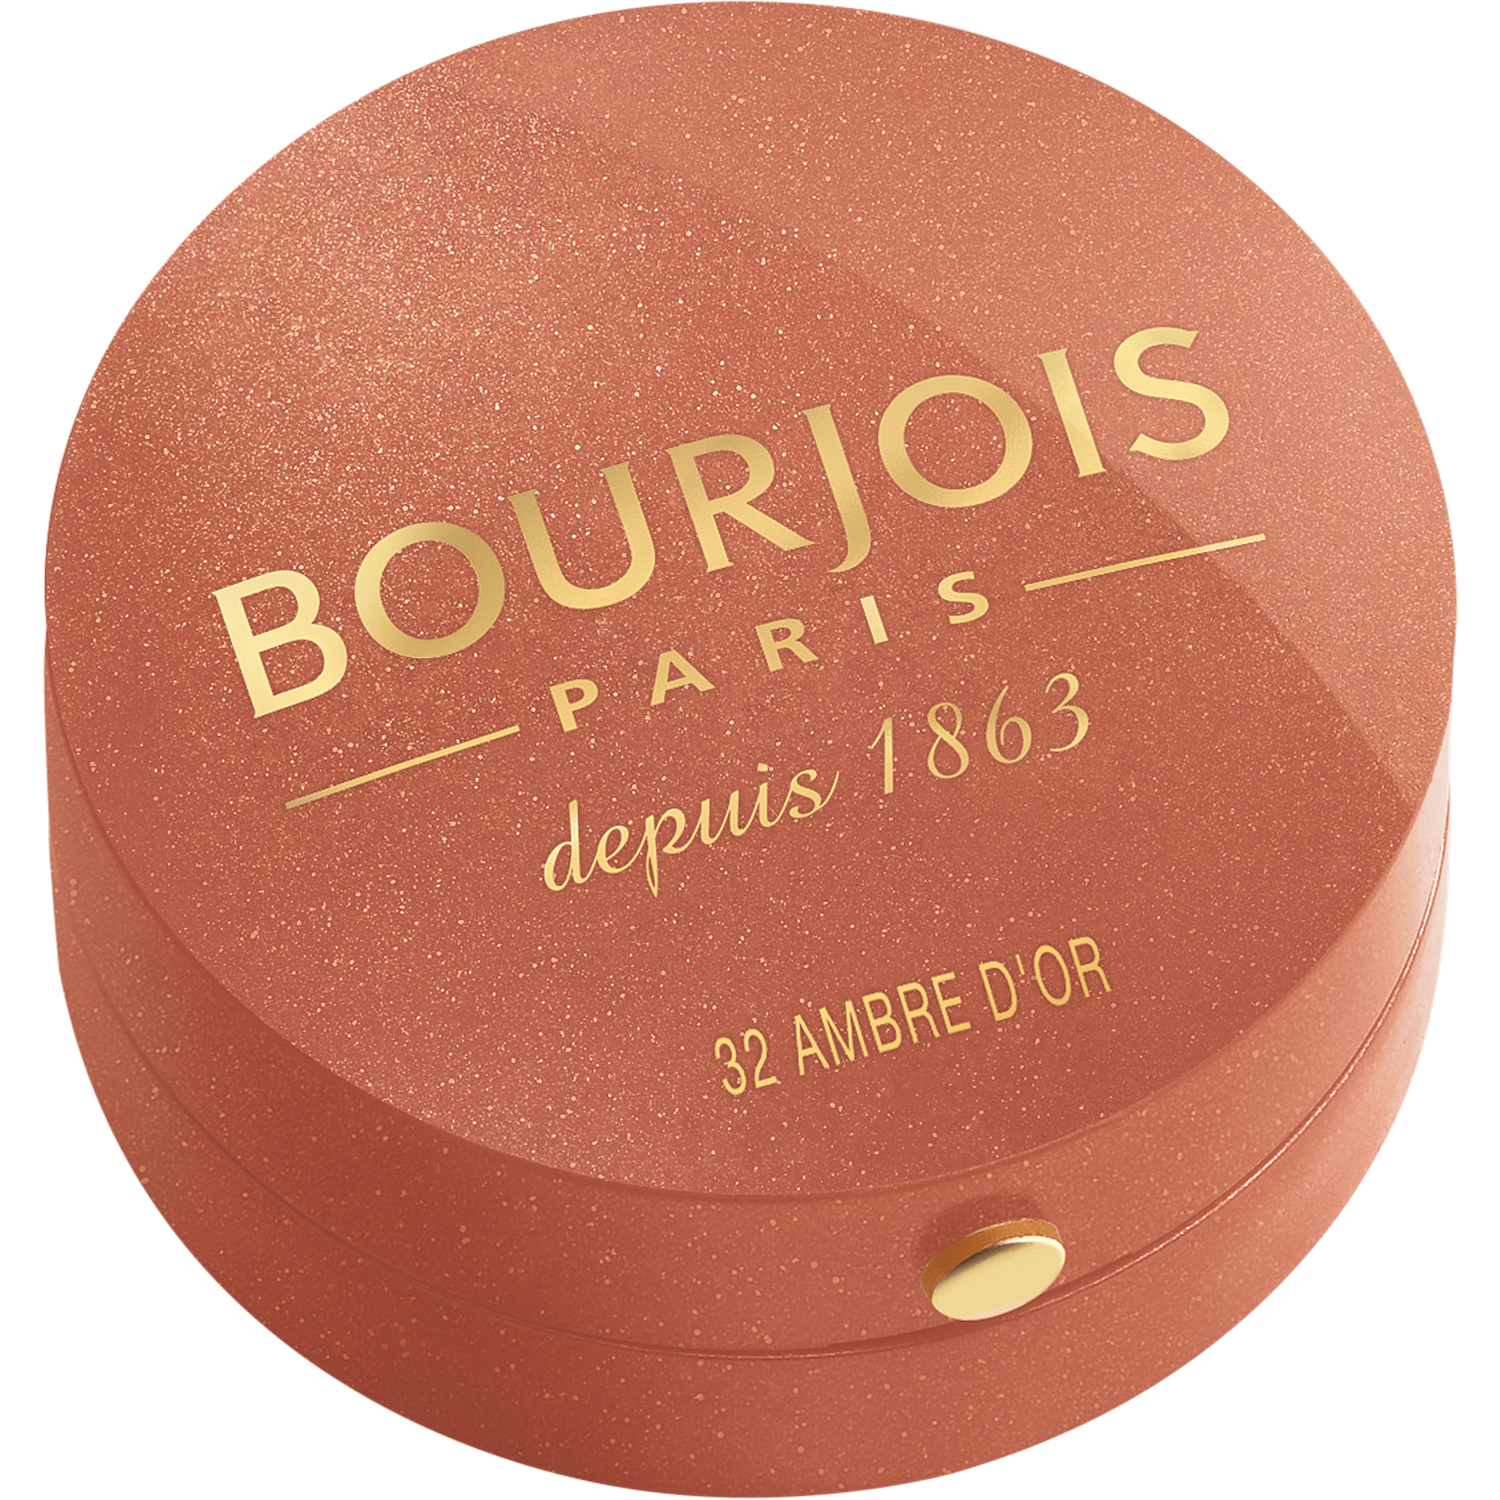 BOURJOIS Румяна для лица 32 / Blusher ambre d`or - Румяна